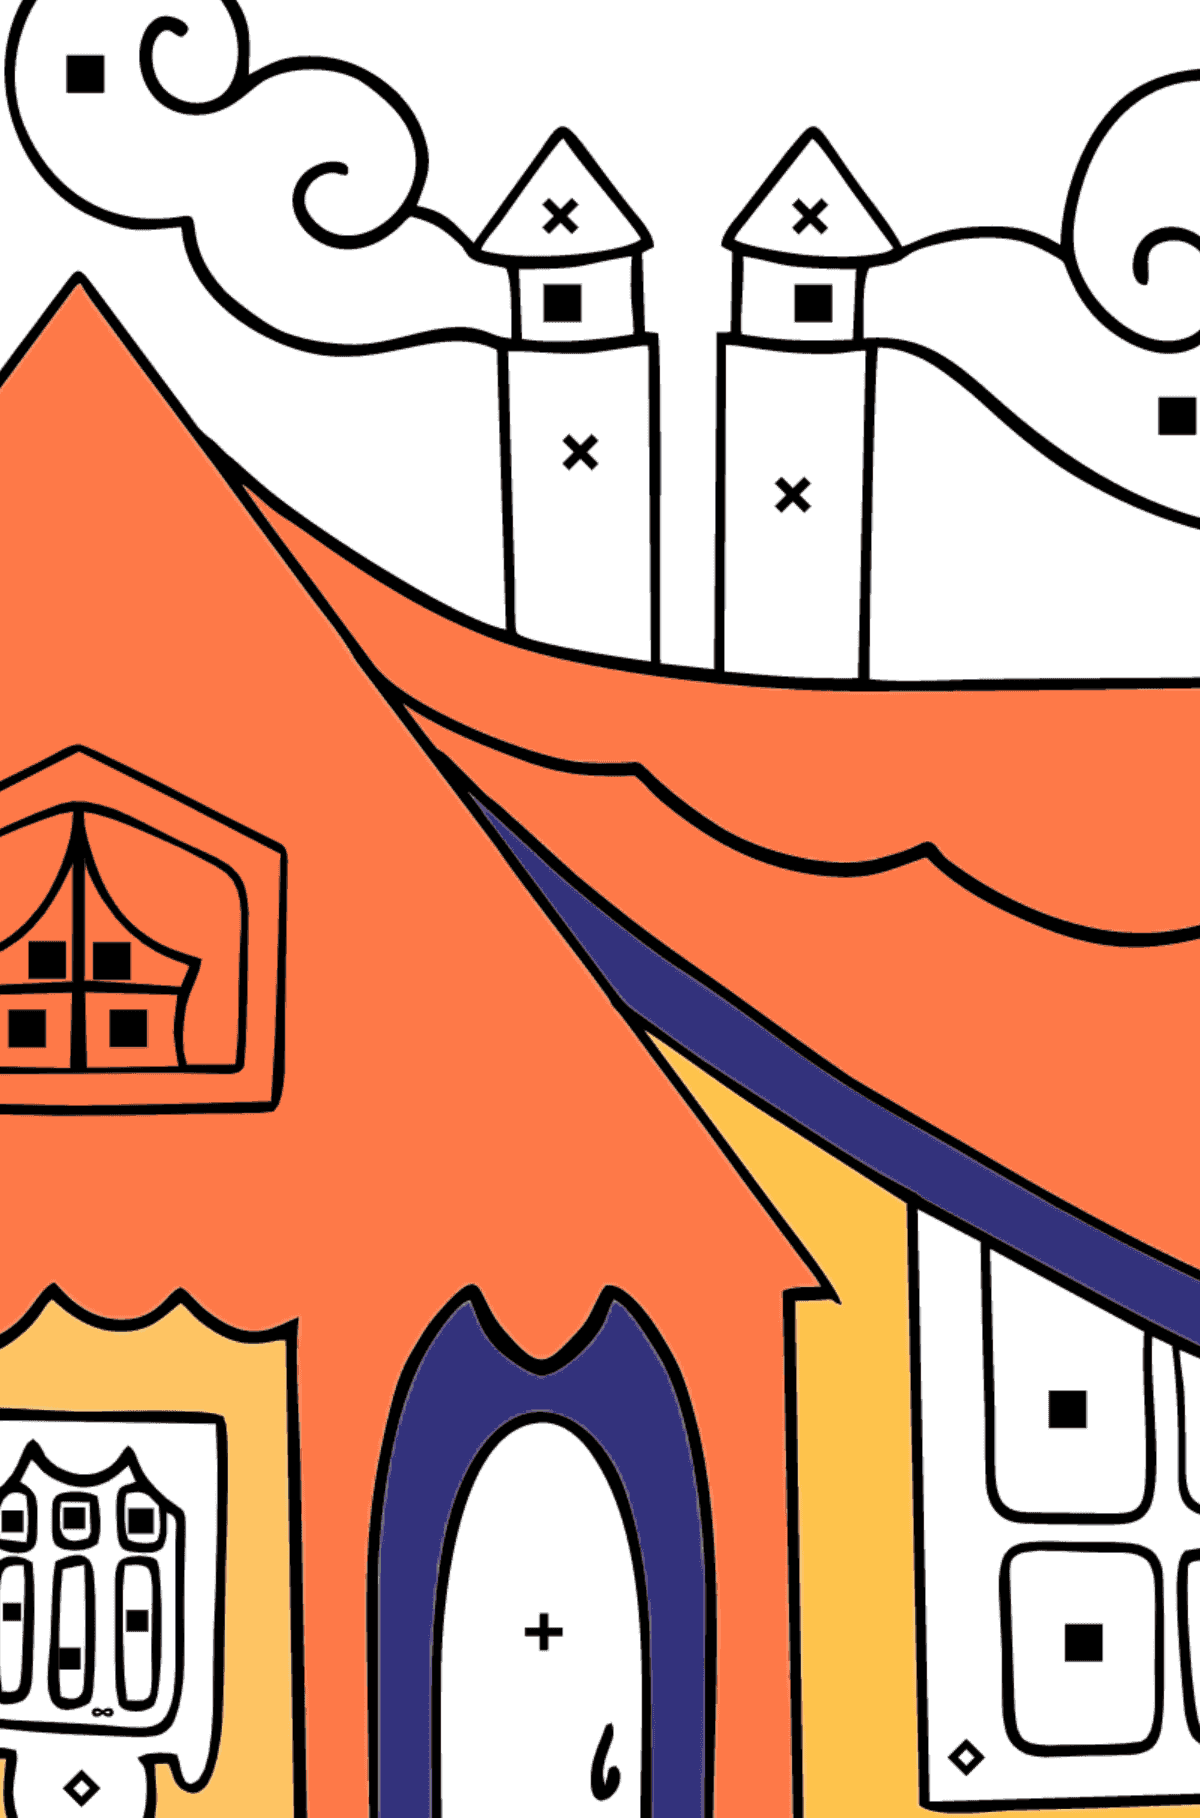 Simple Coloring Page - A Tiny House for Kids  - Color by Special Symbols